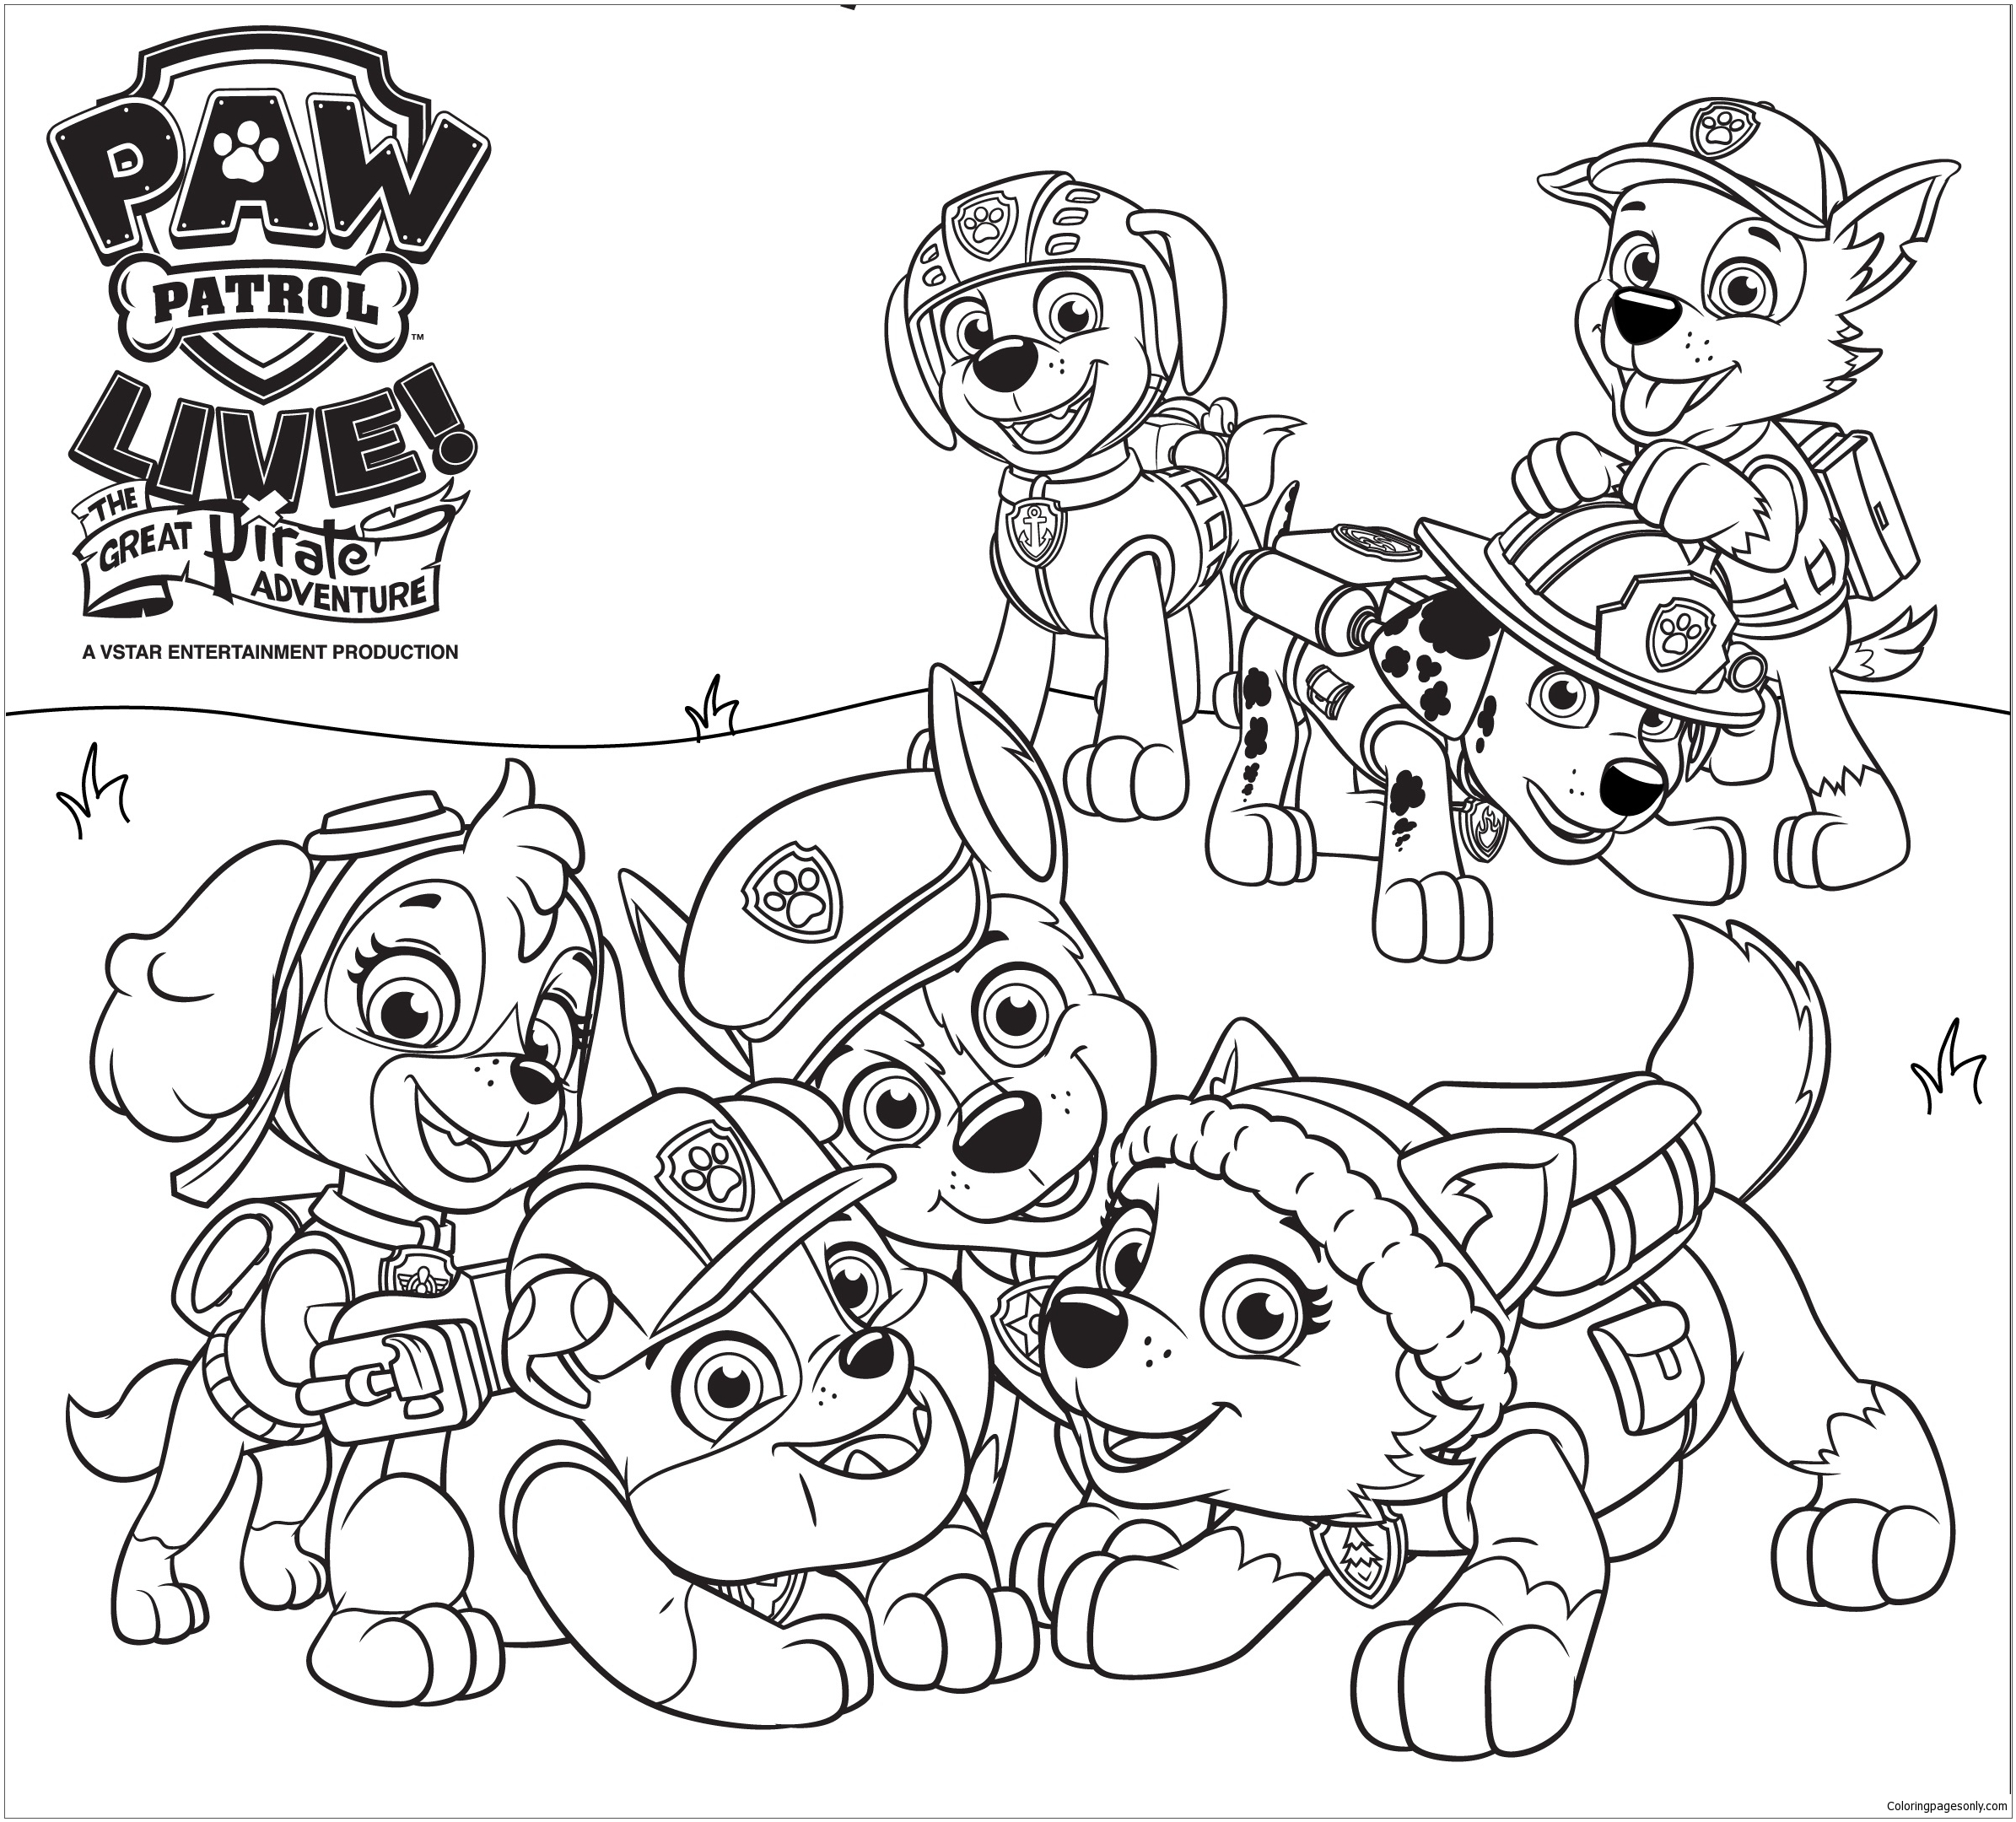 Easter Coloring Pages Paw Patrol : Ideas easter coloring pages paw patrol on spectaxmas